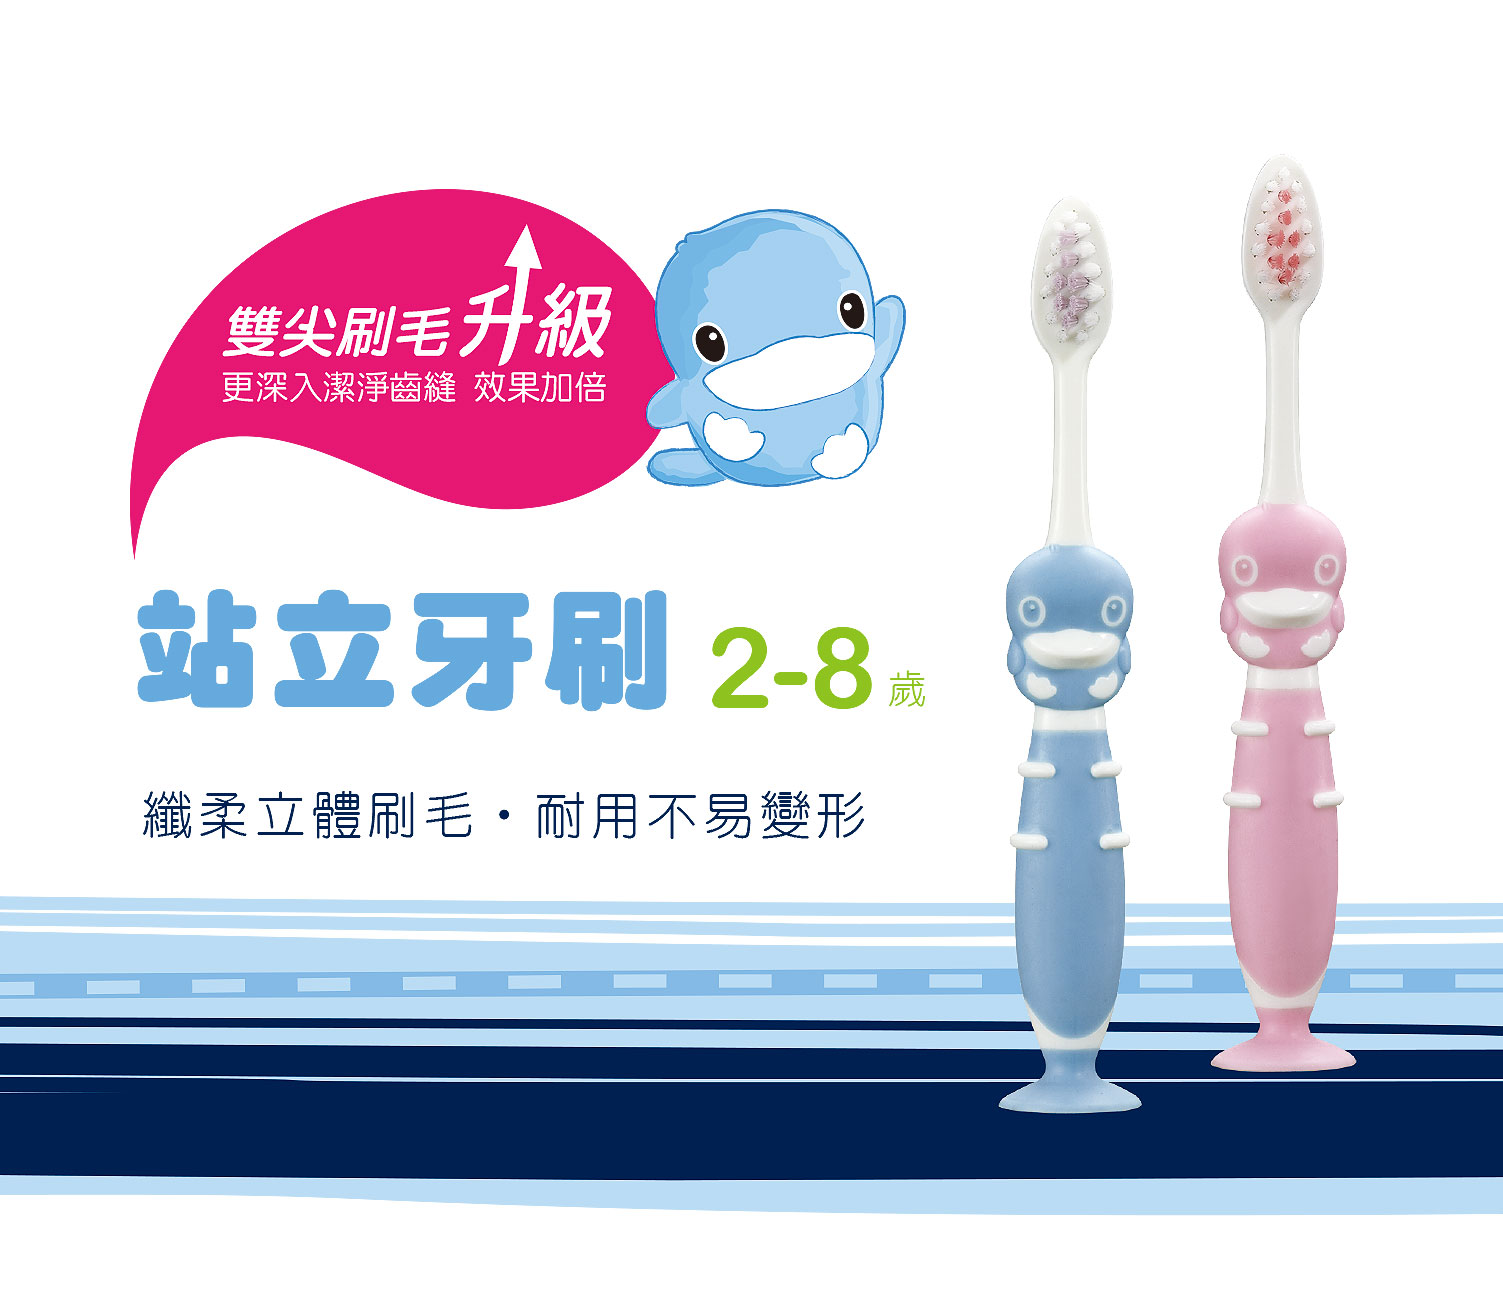 proimages/Bathing&CleanSeries/Clean&Care/Toothbrush/1114/KU1114-站立牙刷2入-網頁編輯-1.jpg